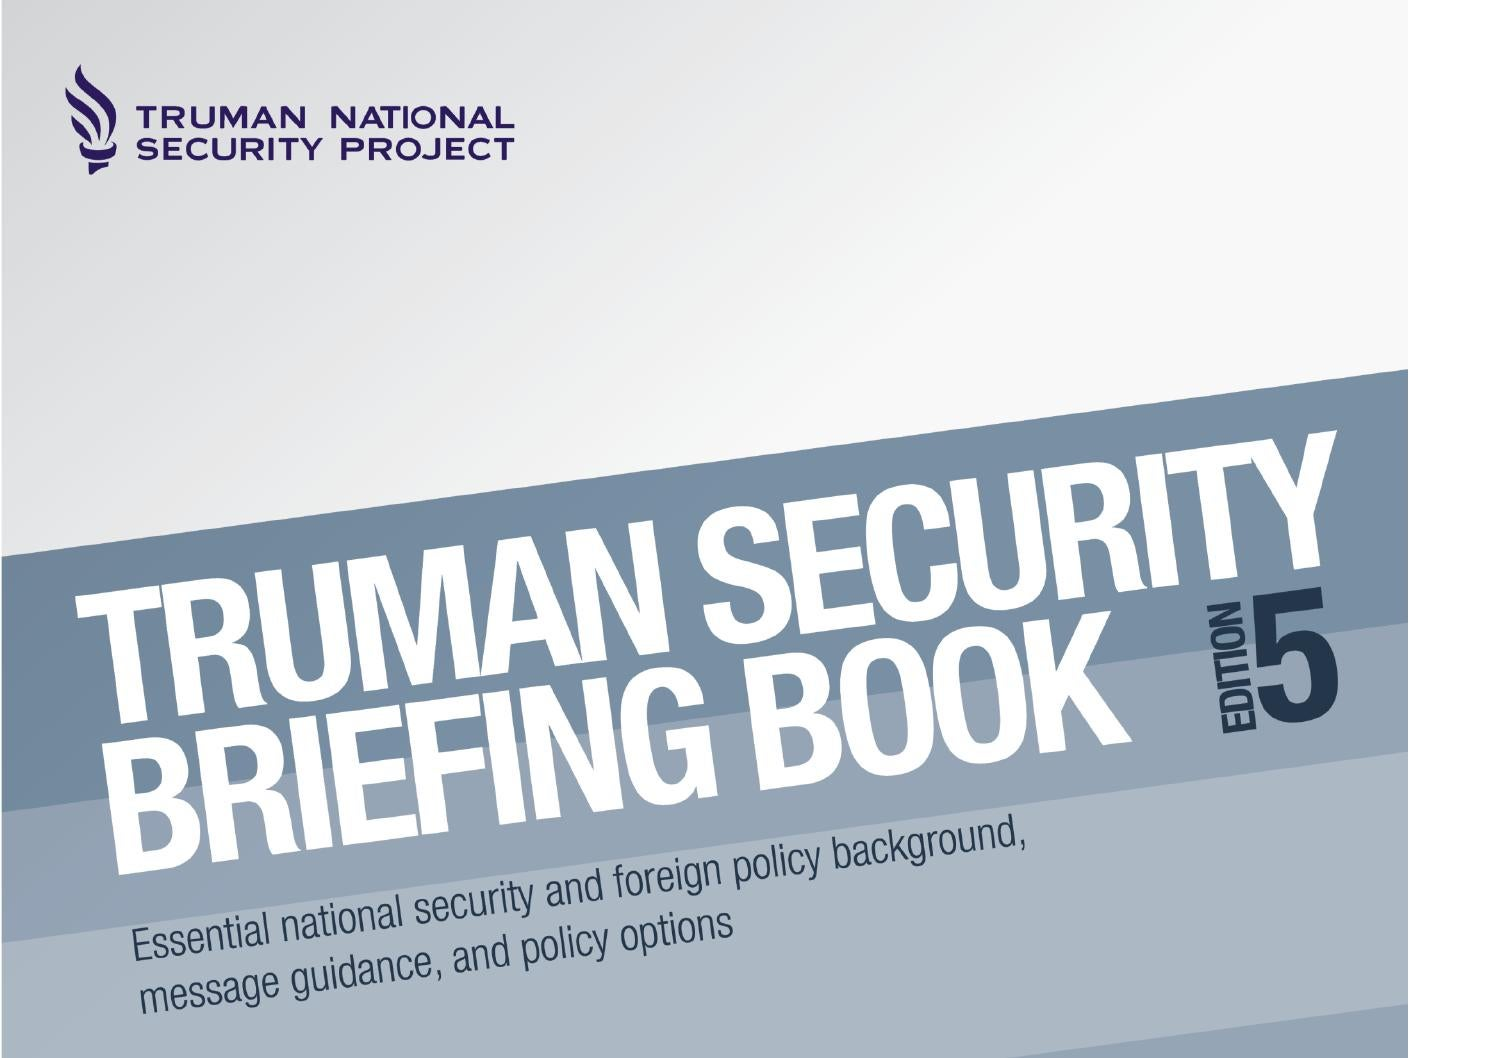 Truman security briefing book: Edition 5 by Open Briefing - issuu